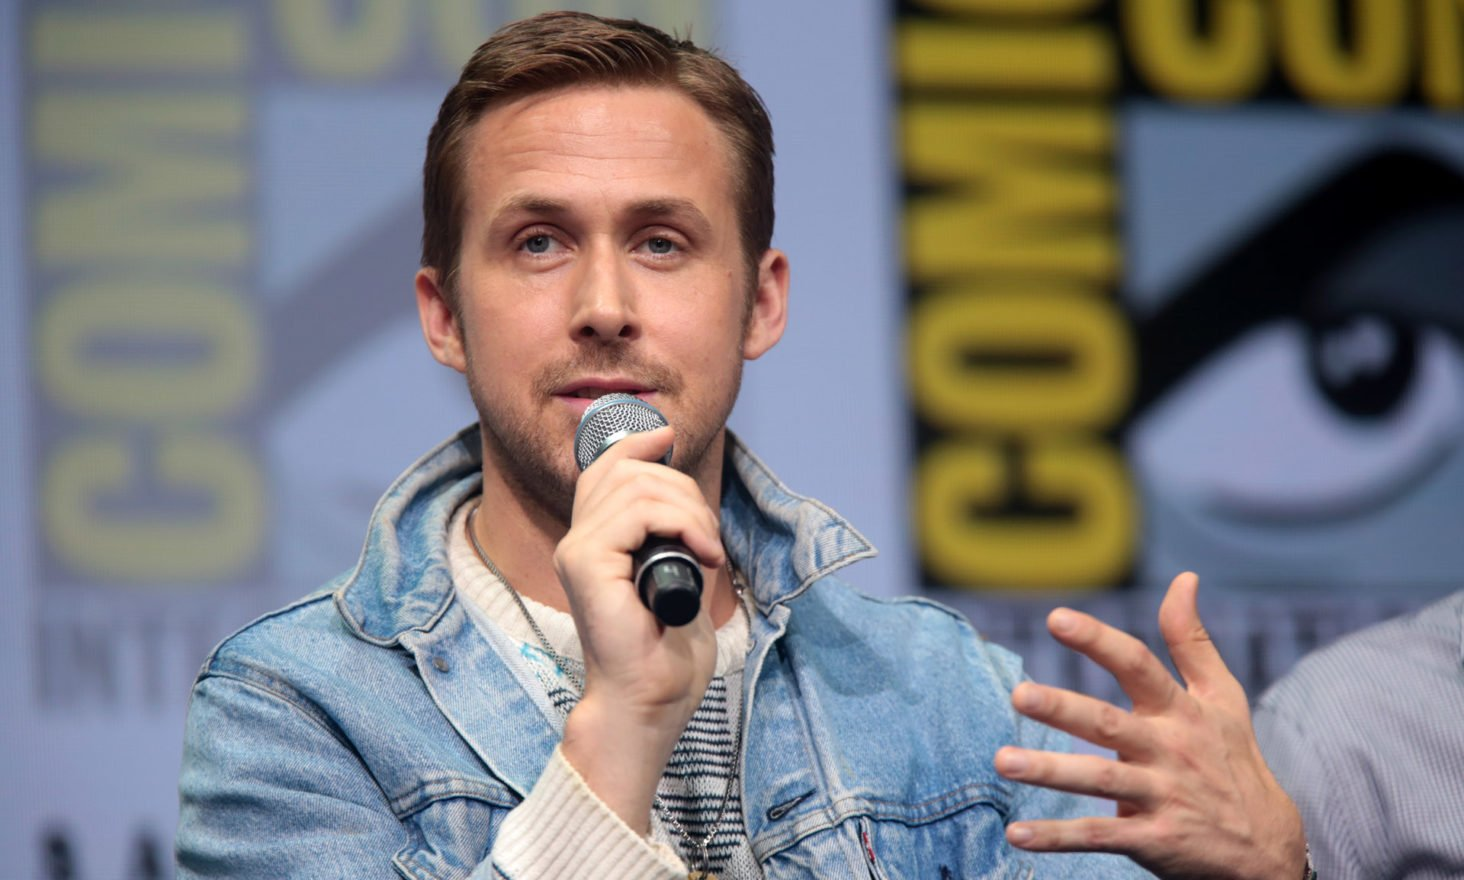 Ryan Gosling image used in ICO scam